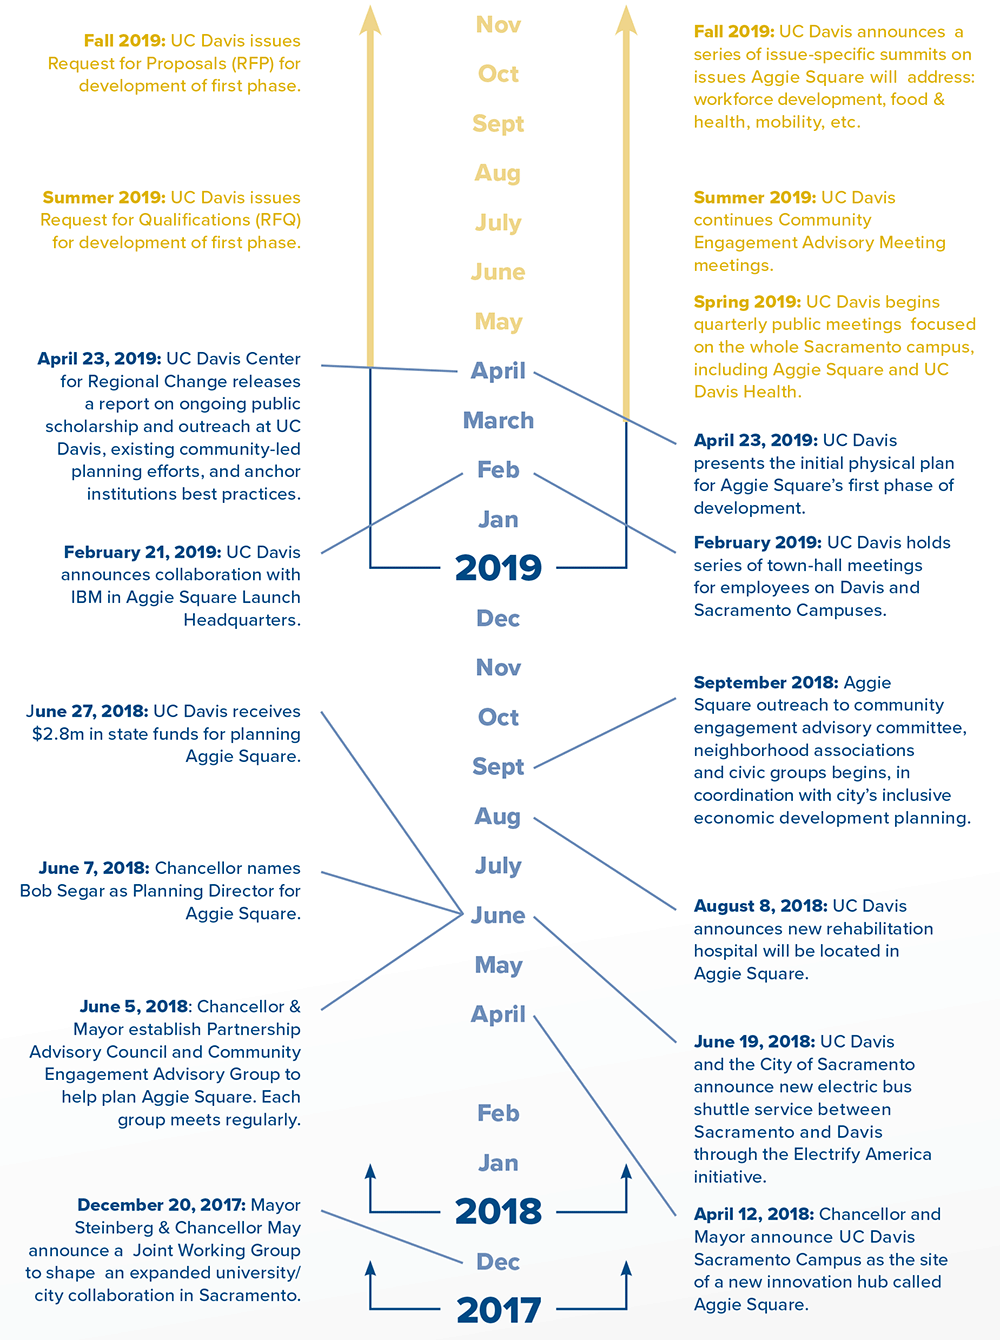 Planning and Public Outreach Timeline